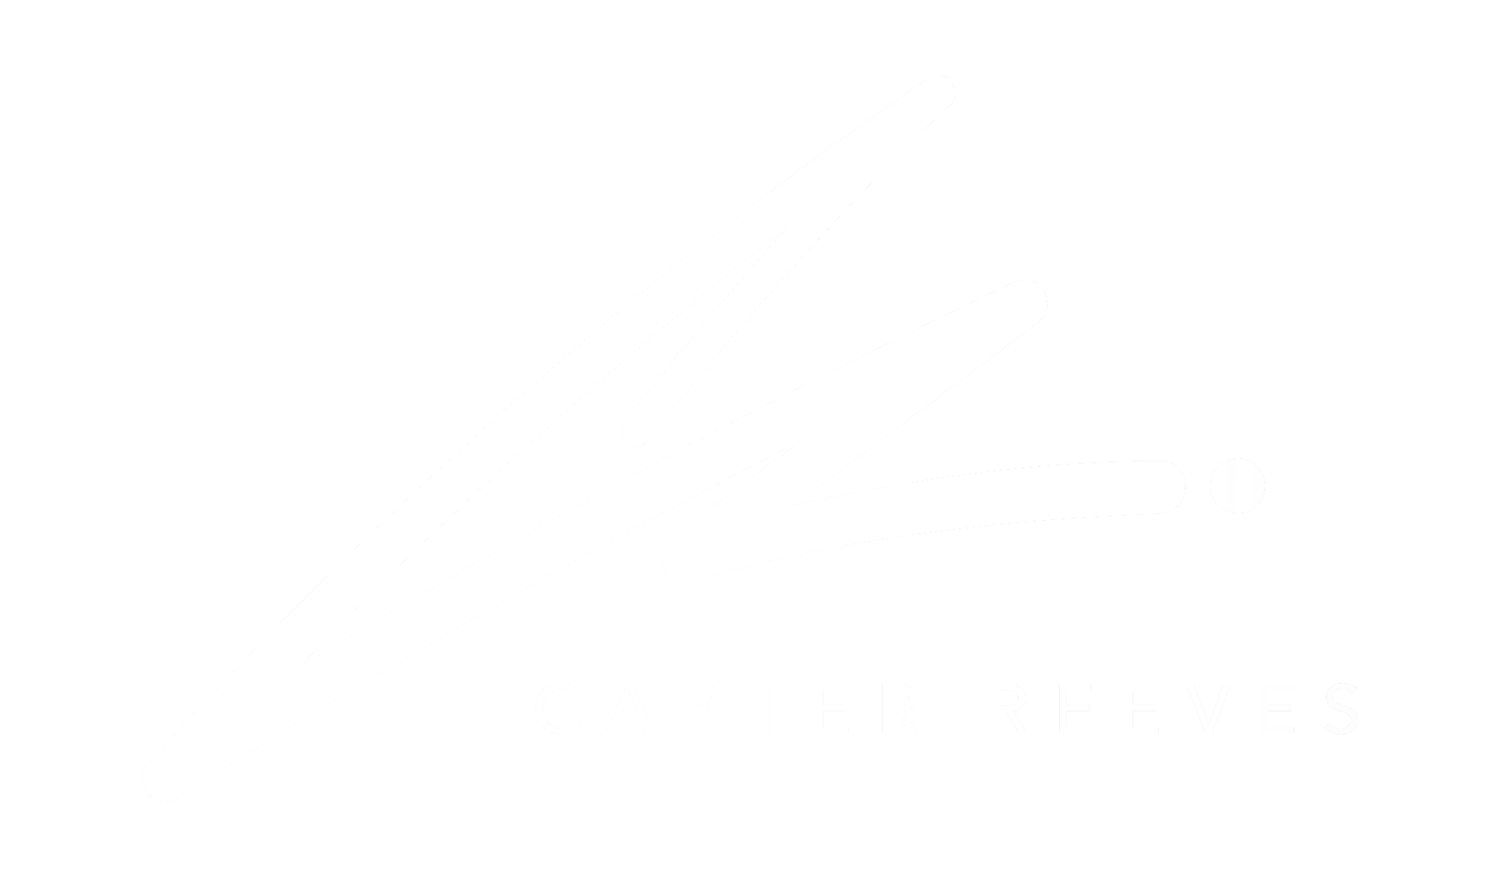 Carter Reeves | Official Site